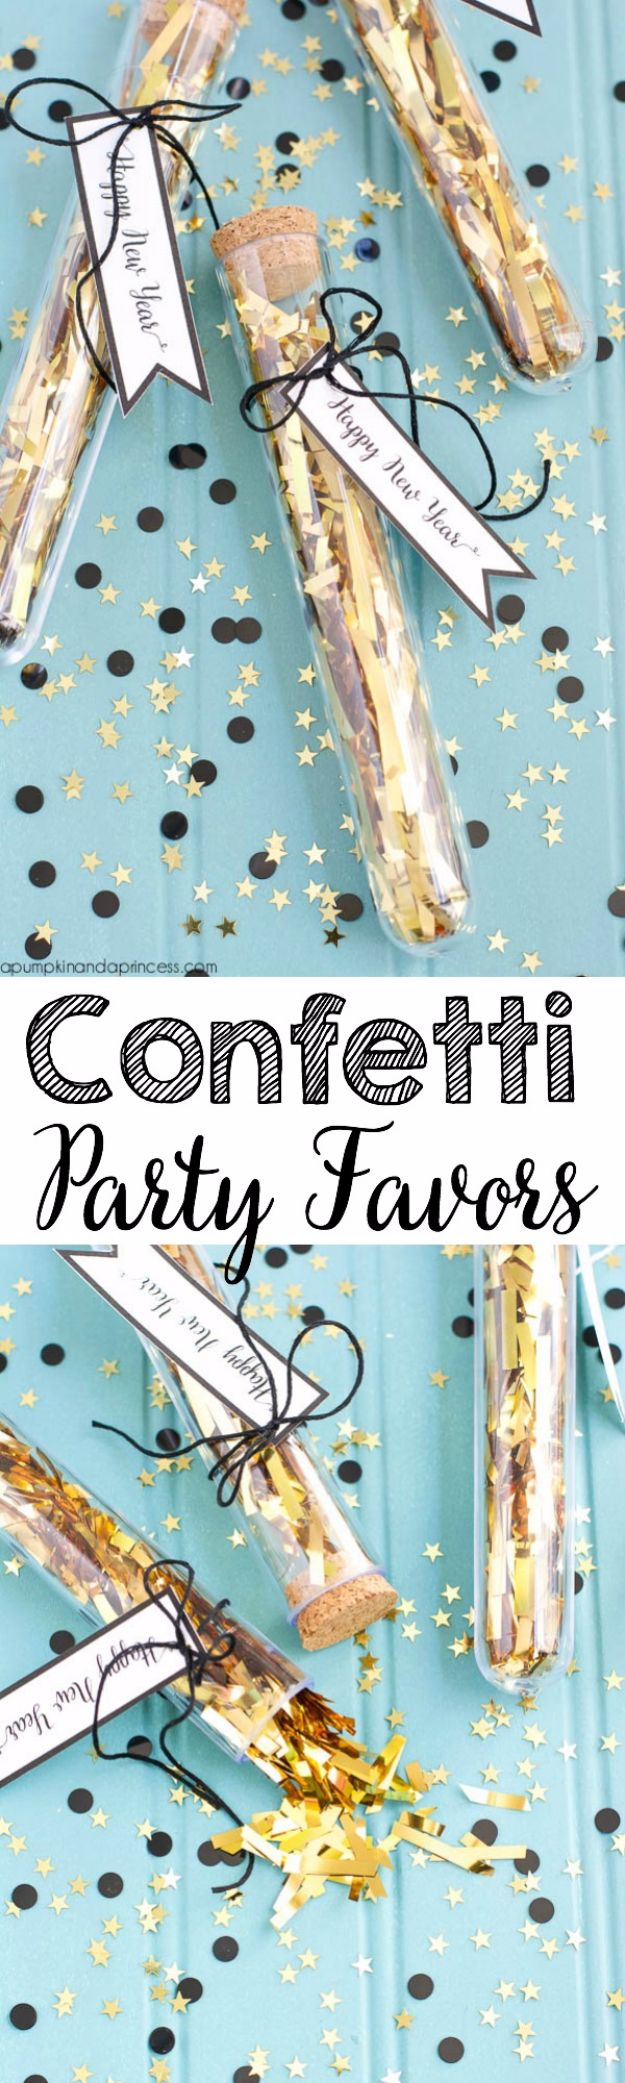 New Years Eve Decor Ideas - Confetti Party Favors - DIY New Year's Eve Decorations - Cheap Ideas for Banners, Balloons, Party Tables, Centerpieces and Festive Streamers and Lights - Cool Placecards, Photo Backdrops, Party Hats, Party Horns and Champagne Glasses - Cute Invitations, Games and Free Printables #diy #newyearseve #parties